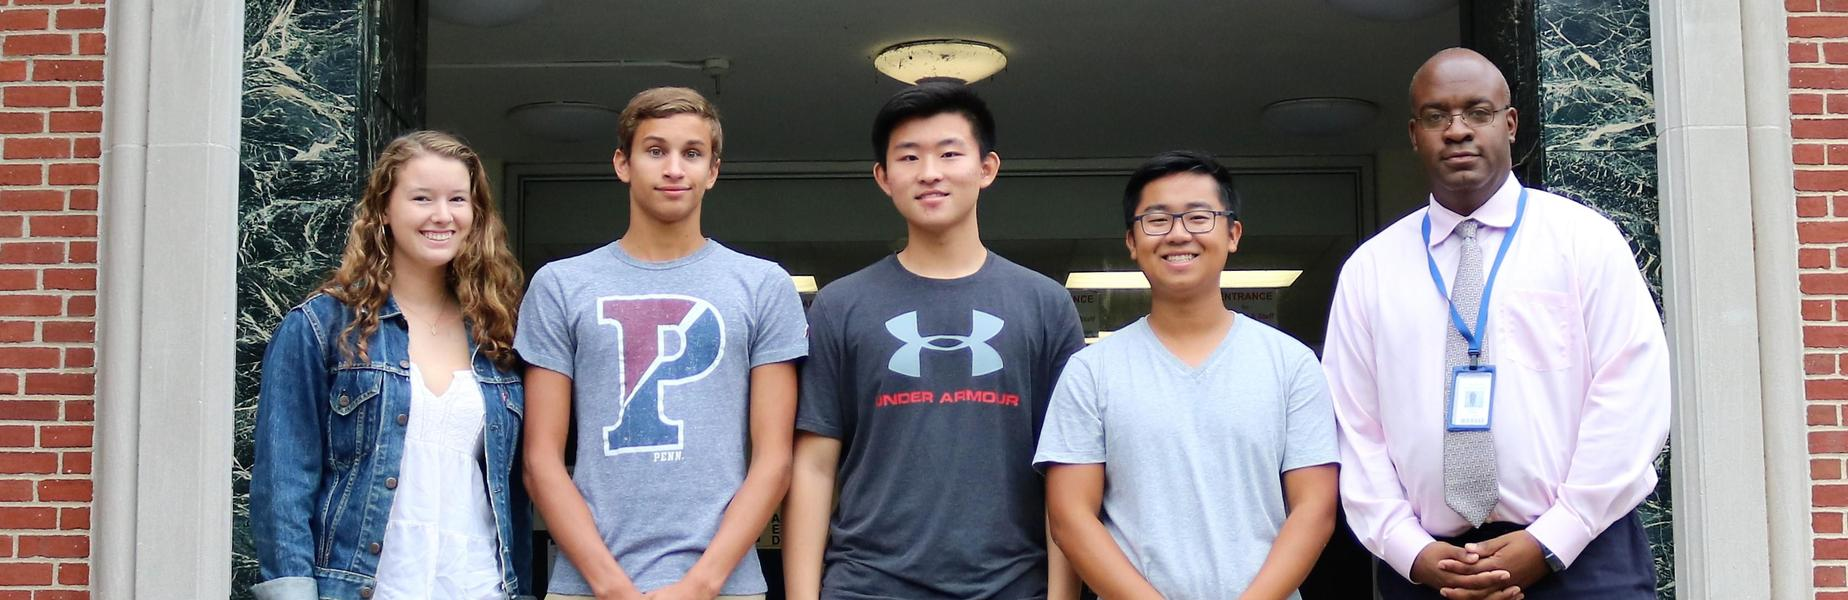 Westfield High School seniors Austin Chen, Madeline Reynders, Edward Xing, and Zachary Youssef have been named semifinalists in the 2019 National Merit Scholarship Competition.  Pictured here with WHS principal Dr. Derrick Nelson.